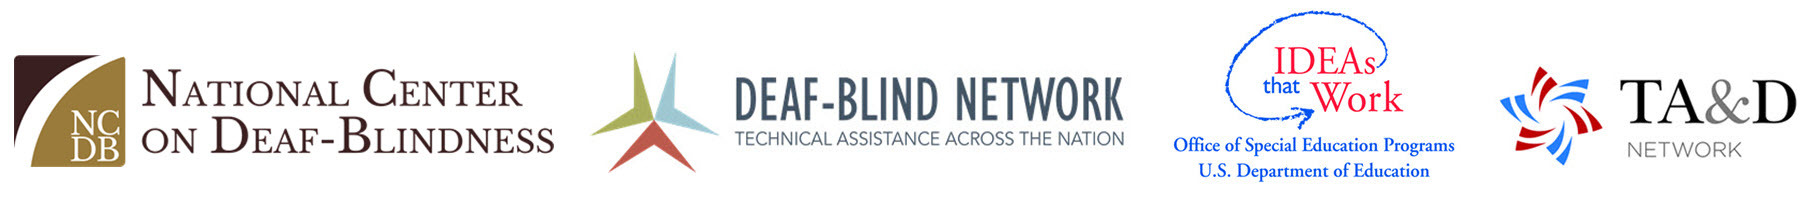 Four logos: National Center on Deaf-Blindness; Deaf-Blind Network, Technical Assistance Across the Nation; IDEAs that Work, Office of Special Education Programs, U.S. Department of Education; TA&D Network